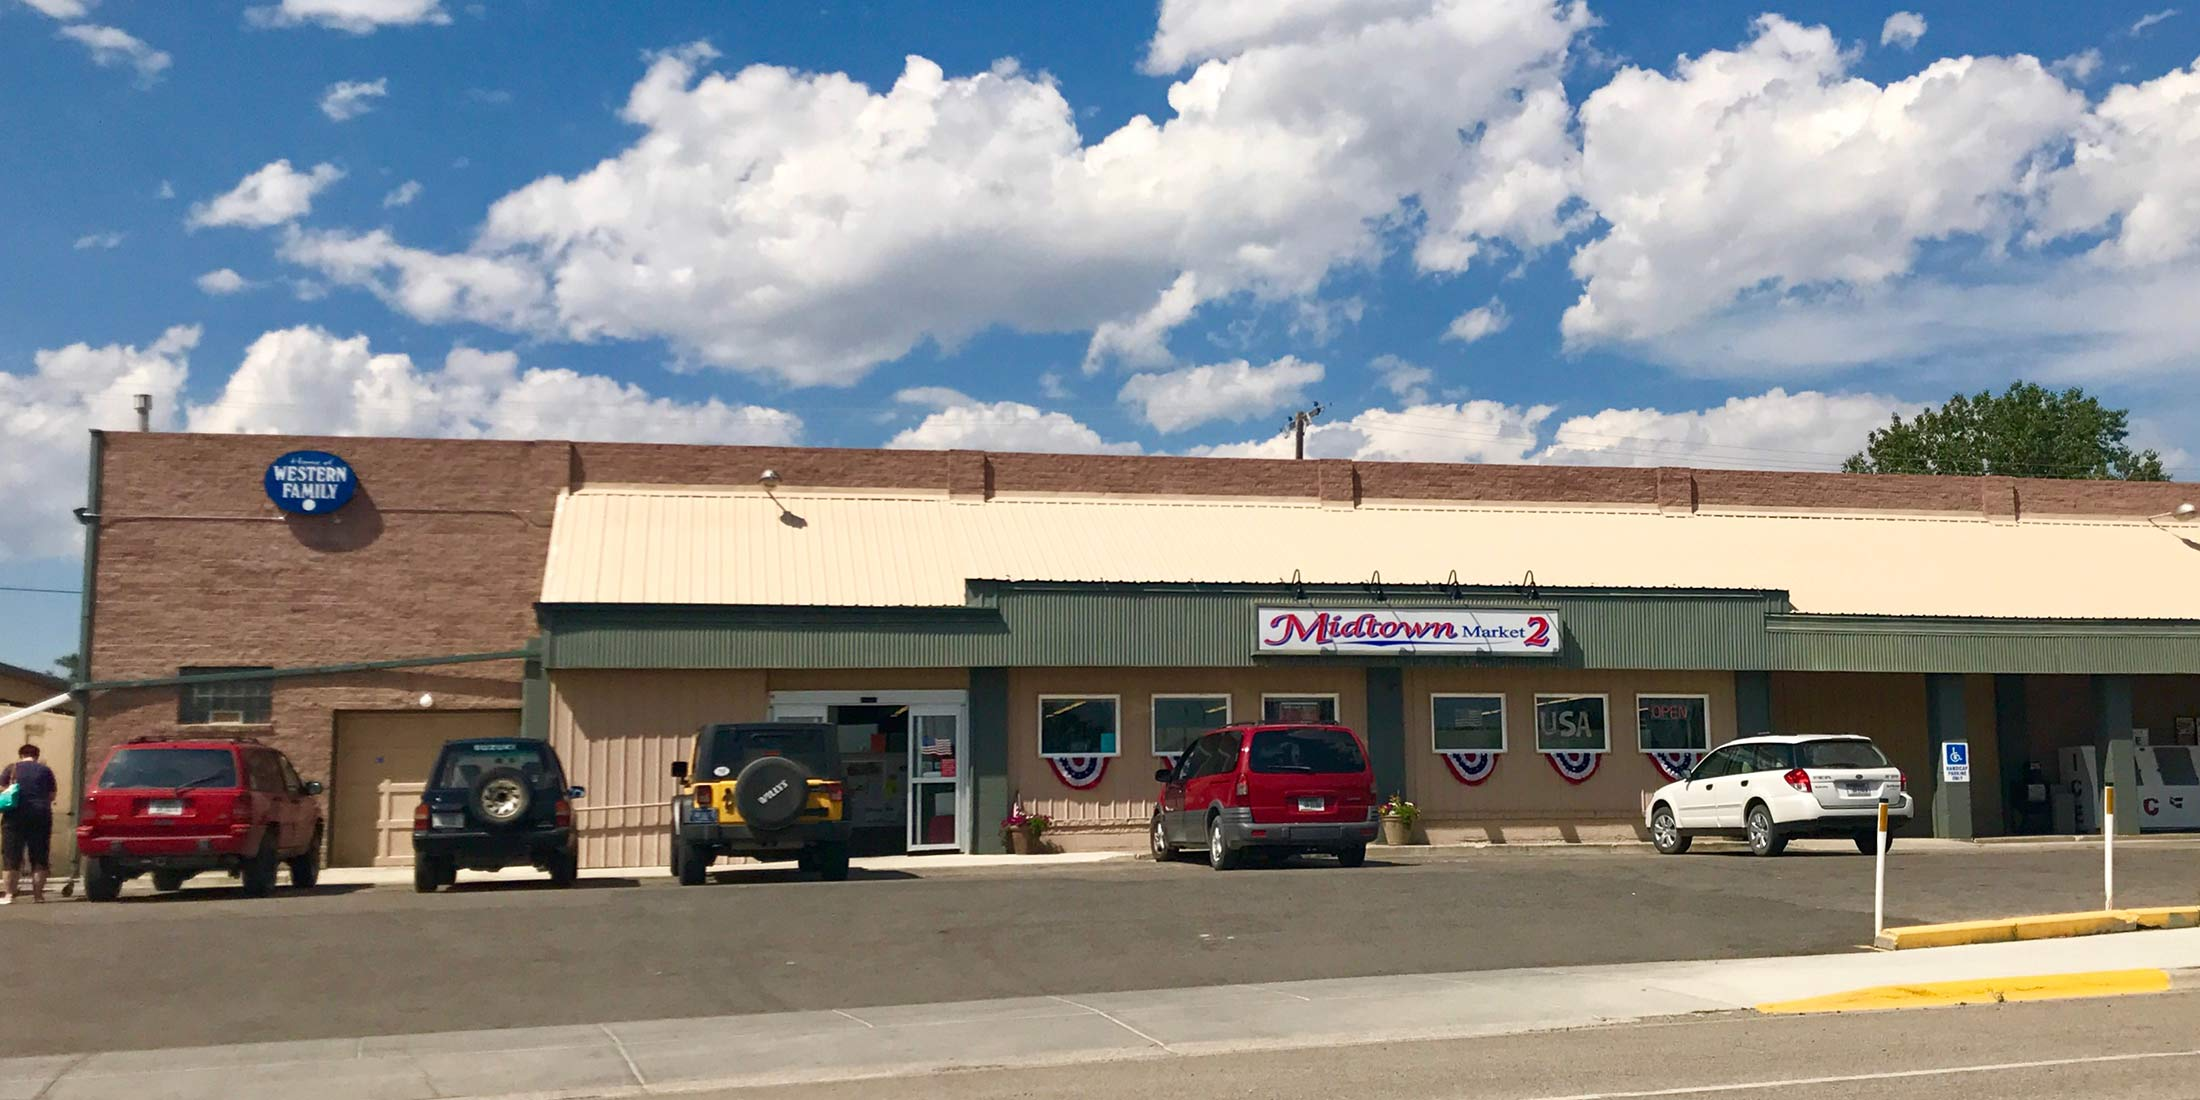 Stock up on groceries and supplies at Midtown Market located on Highway 12 in Harlowton, Montana - Wheatland County.